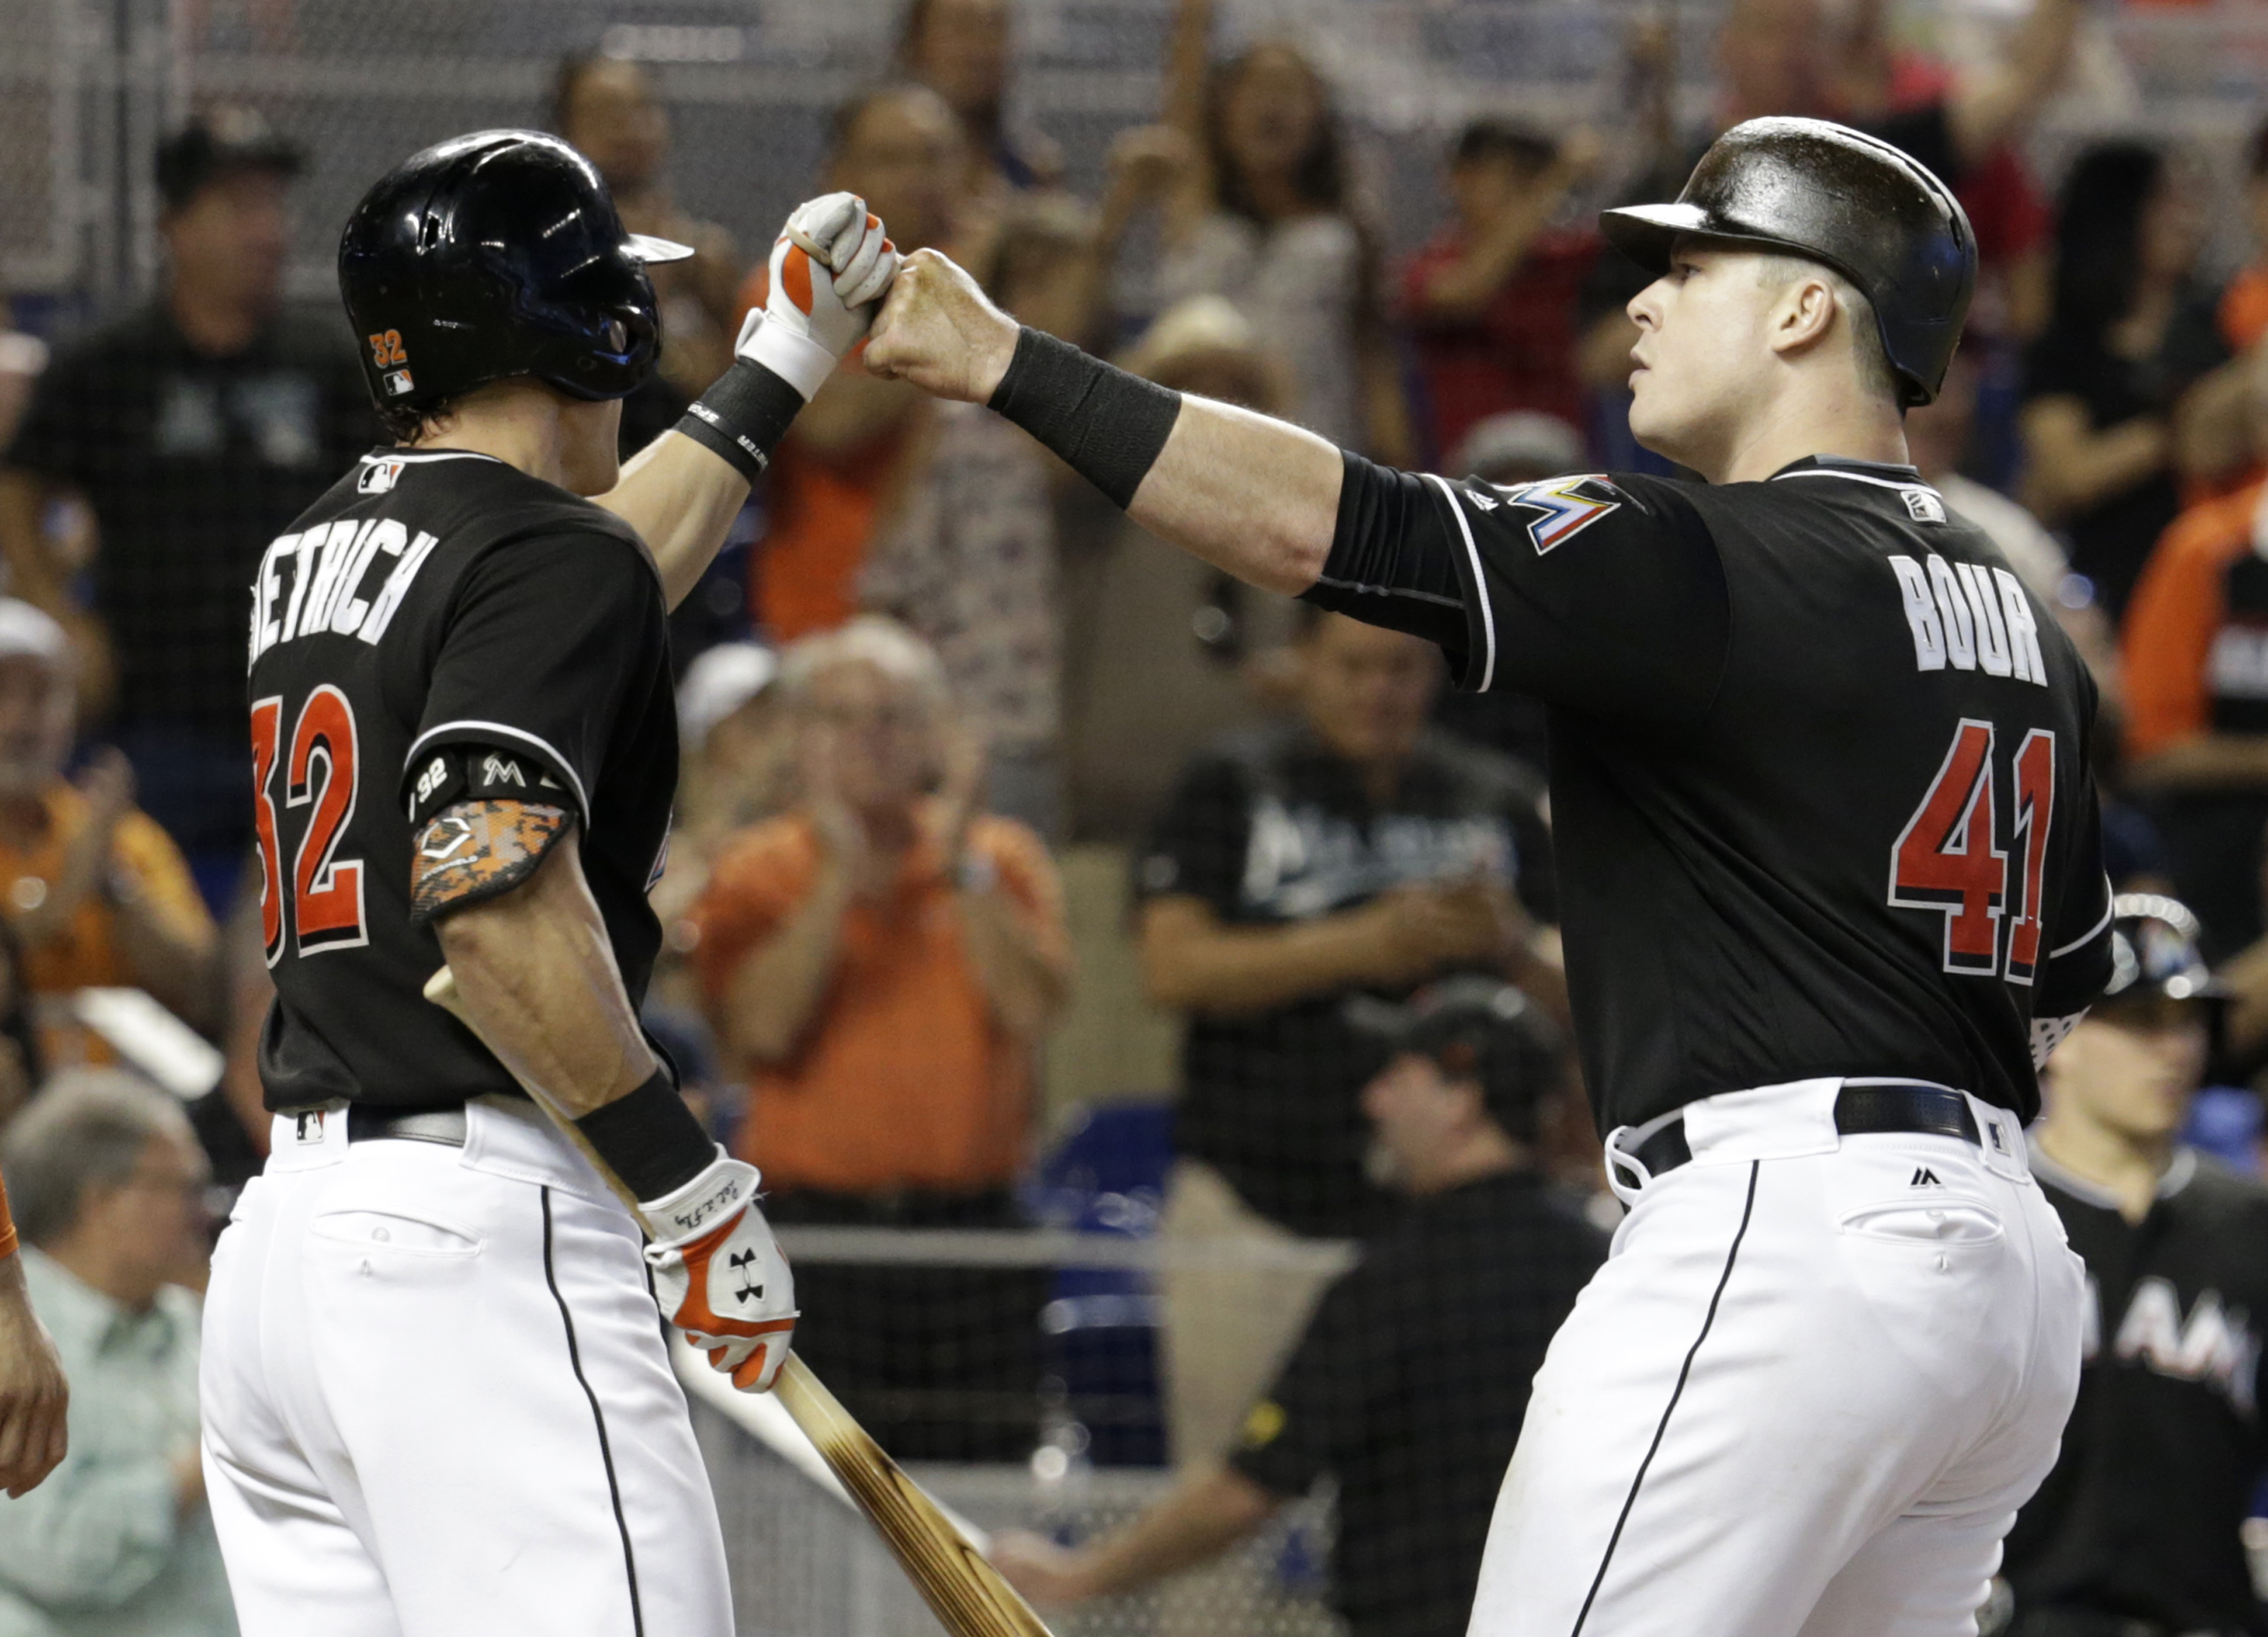 Miami Marlins' Justin Bour (41) is met by Derek Dietrich (32) at the plate after scoring on a two-run home run during the fourth inning of a baseball game against the Chicago Cubs, Saturday, June 25, 2016, in Miami. (AP Photo/Lynne Sladky)